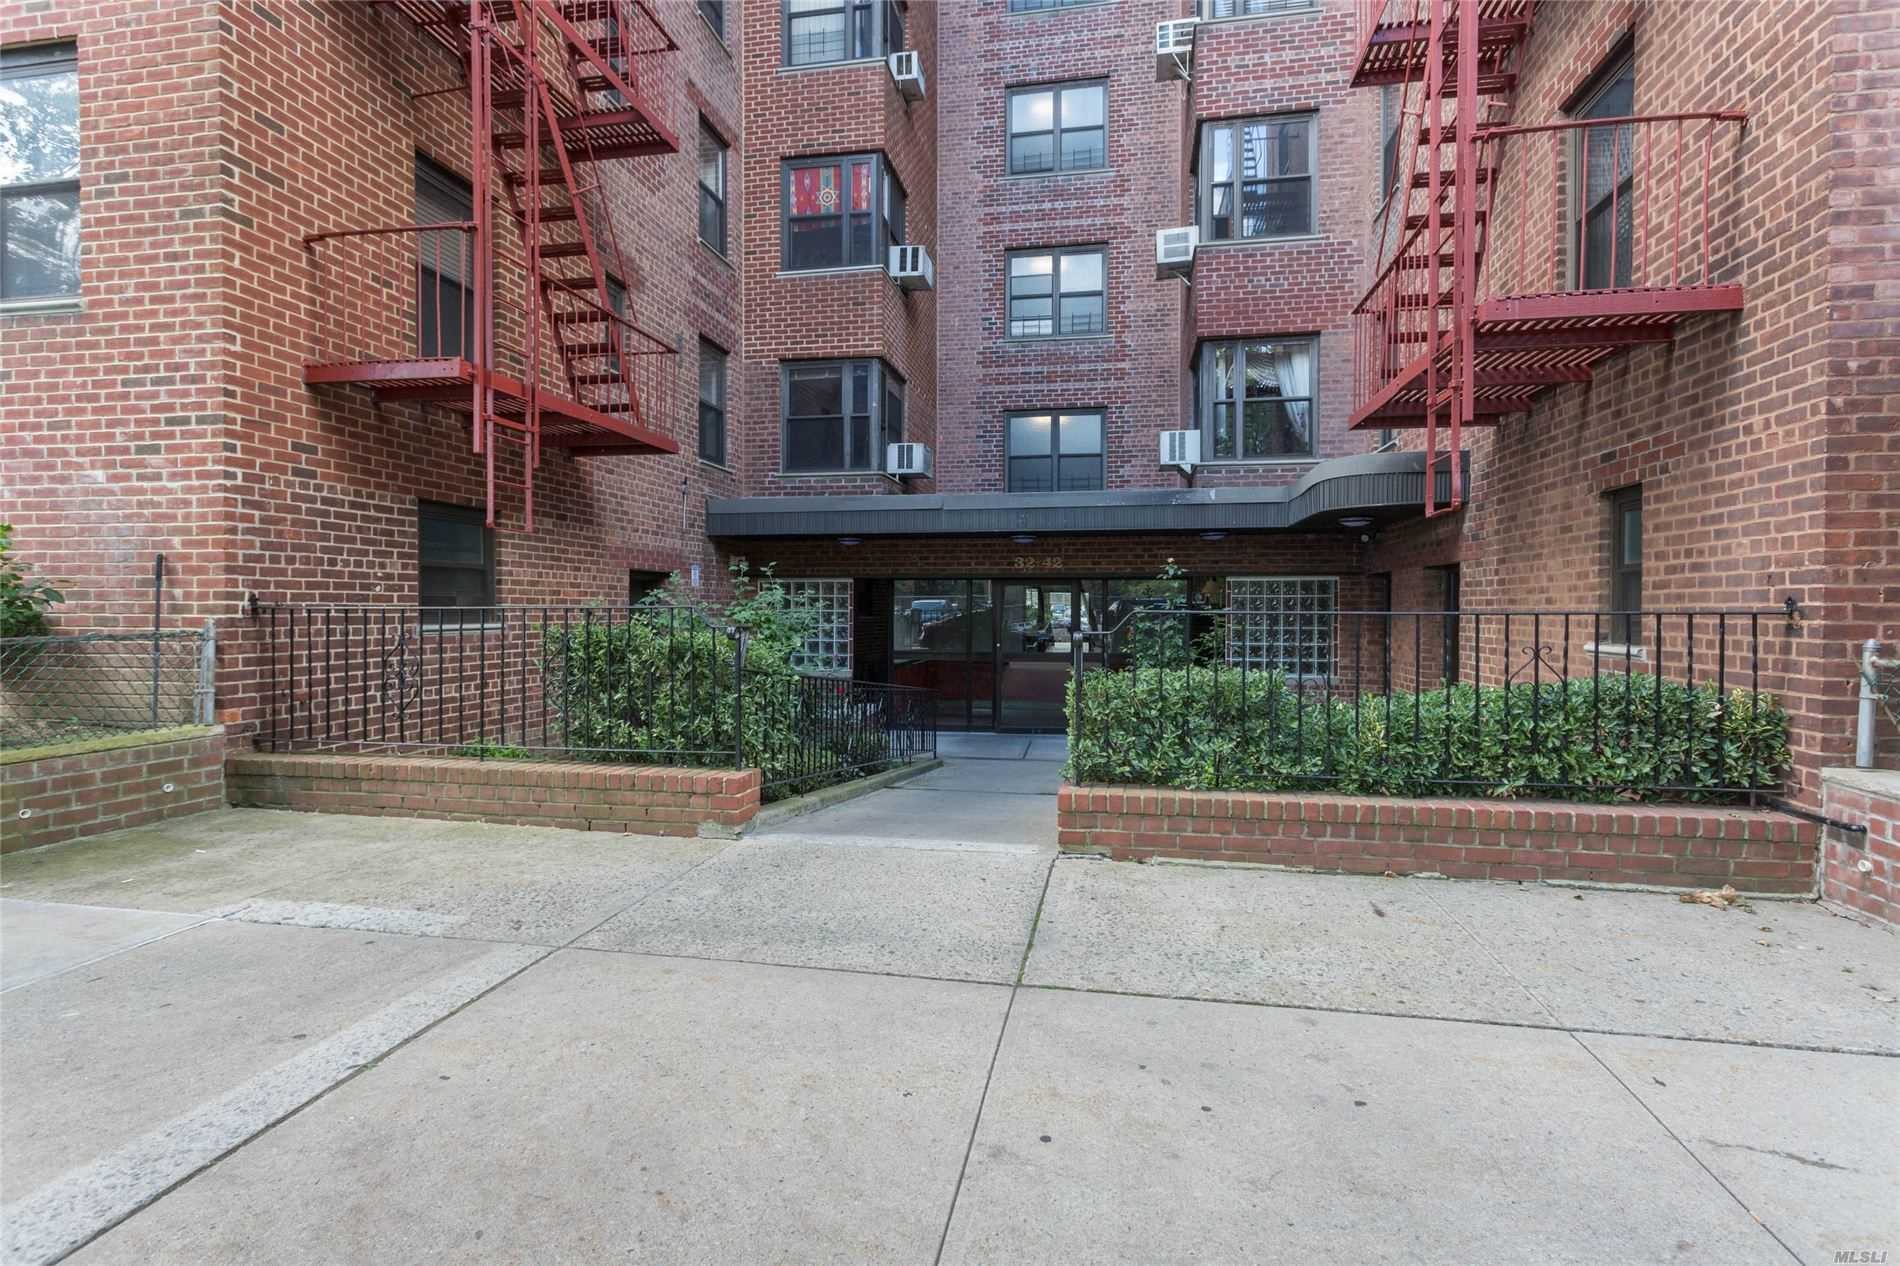 Sale may be subject to term & conditions of an offering plan. Nicely renovated, all appliances brand new. 1-bedroom apt in this coop bldg. Spacious Living Room/Dining rm area. Bedroom features a deep, double-rack closet. EIKitchen with mircrowave and dishwasher. Full bathroom. Laundry facilities. Excellent location, with Northern Blvd at the corner providing many choices.